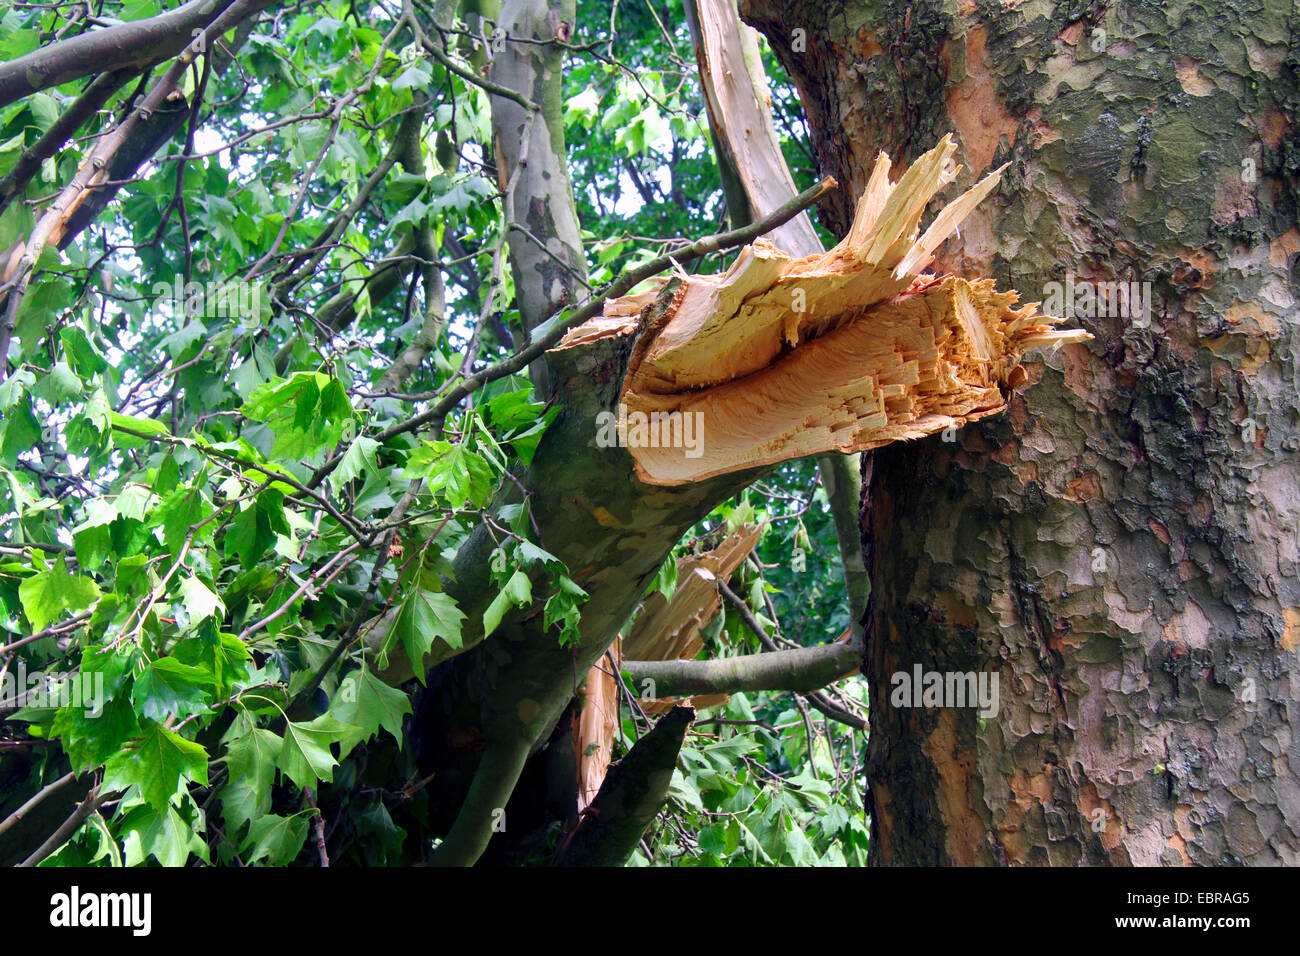 broken branch of a plane after front Ela at 2014-06-09, Germany, North Rhine-Westphalia, Ruhr Area, Essen - Stock Image